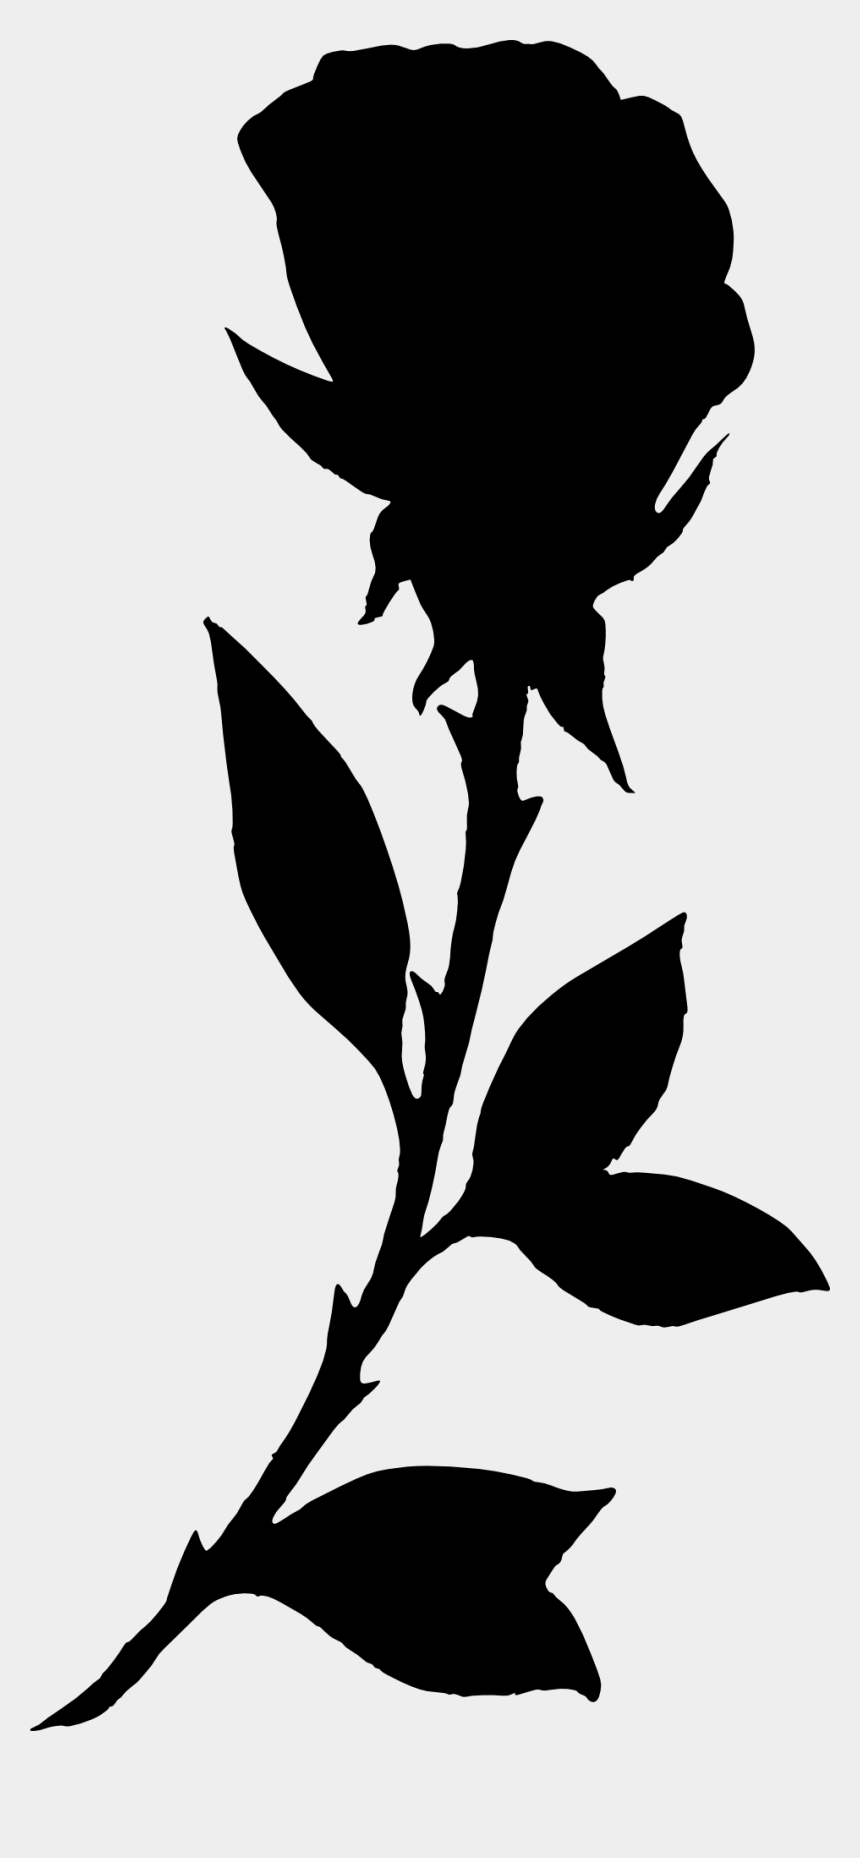 flower stem clipart black and white, Cartoons - Png Black And White Download Bouquet Transparent Silhouette - Black Rose Silhouette Png